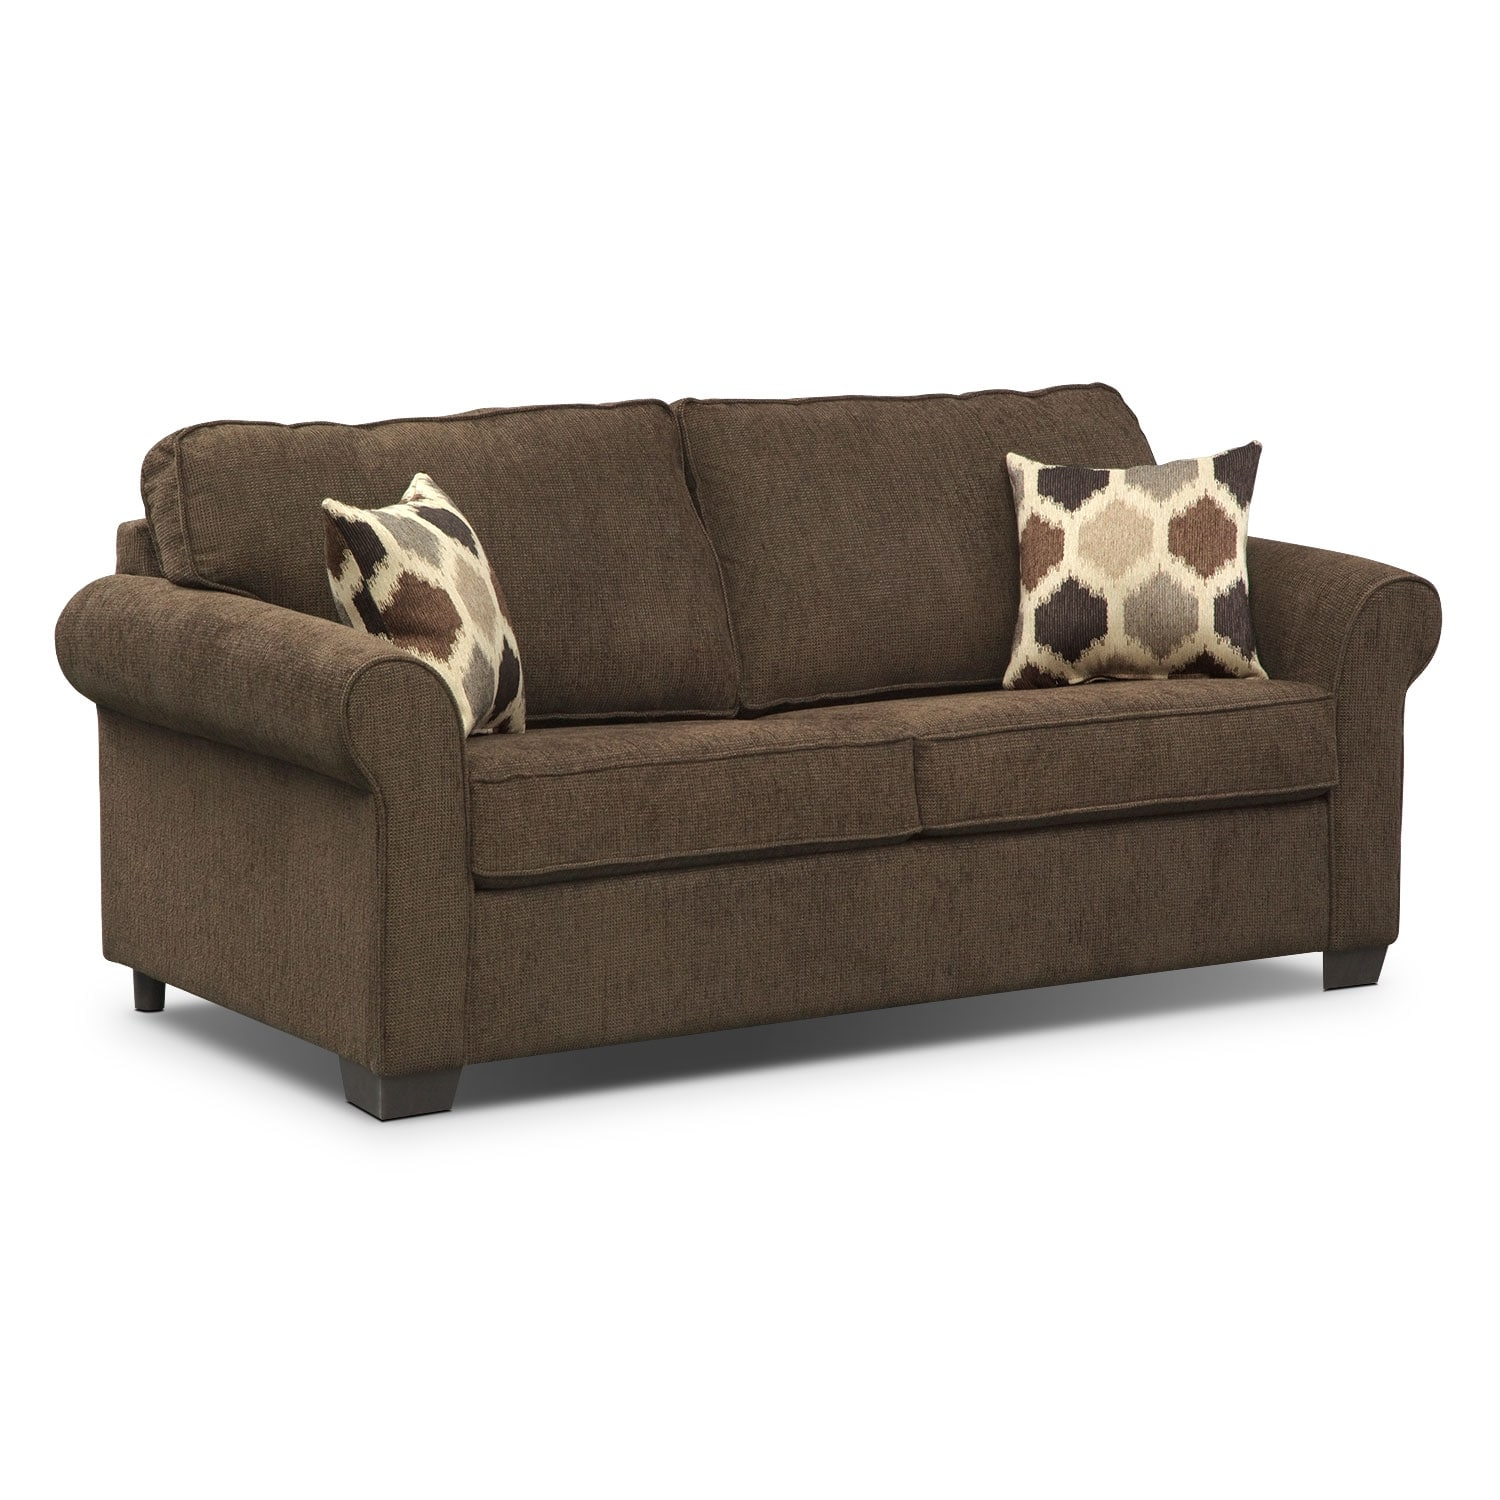 Living Room Furniture - Fletcher Full Memory Foam Sleeper Sofa - Chocolate